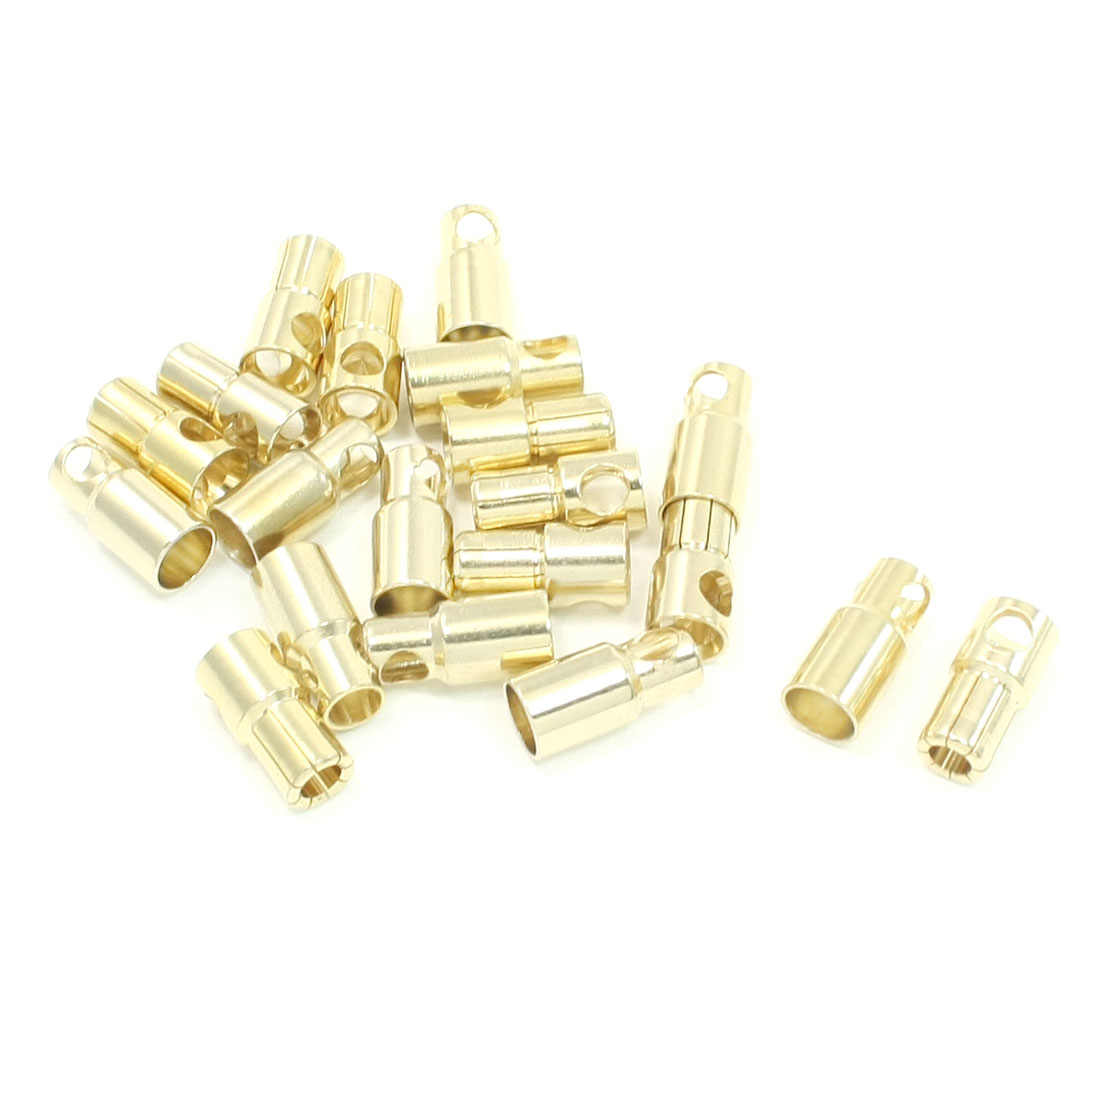 10 Pairs Motor Model Audio Video Female Male Banana Bullet Connectors